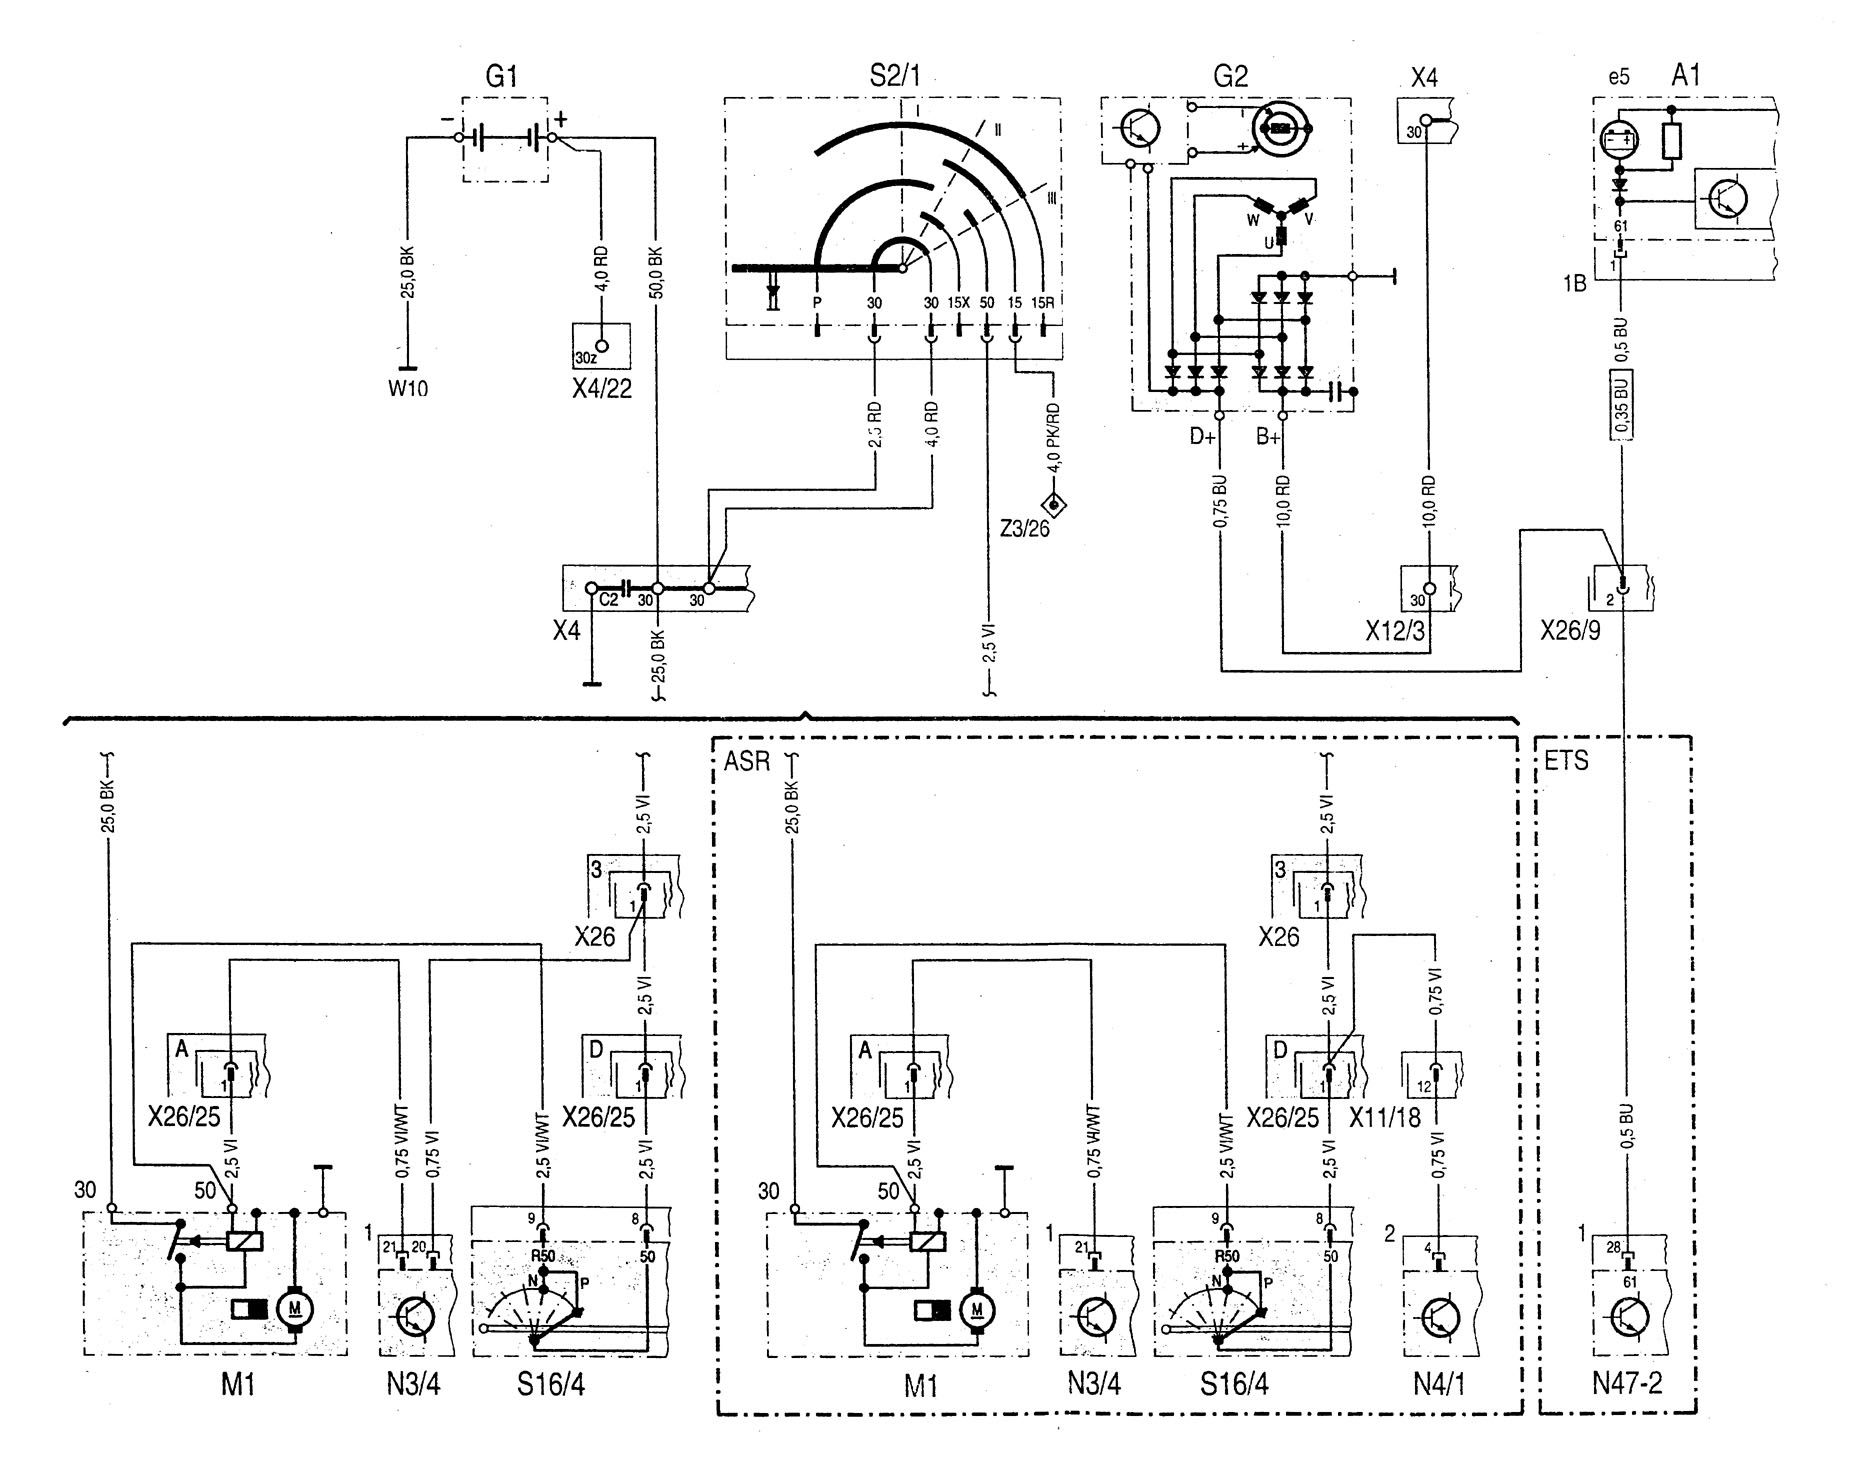 2008 Dodge Sprinter Wiring Schematic Wiring Diagram Ground Ground Lechicchedimammavale It